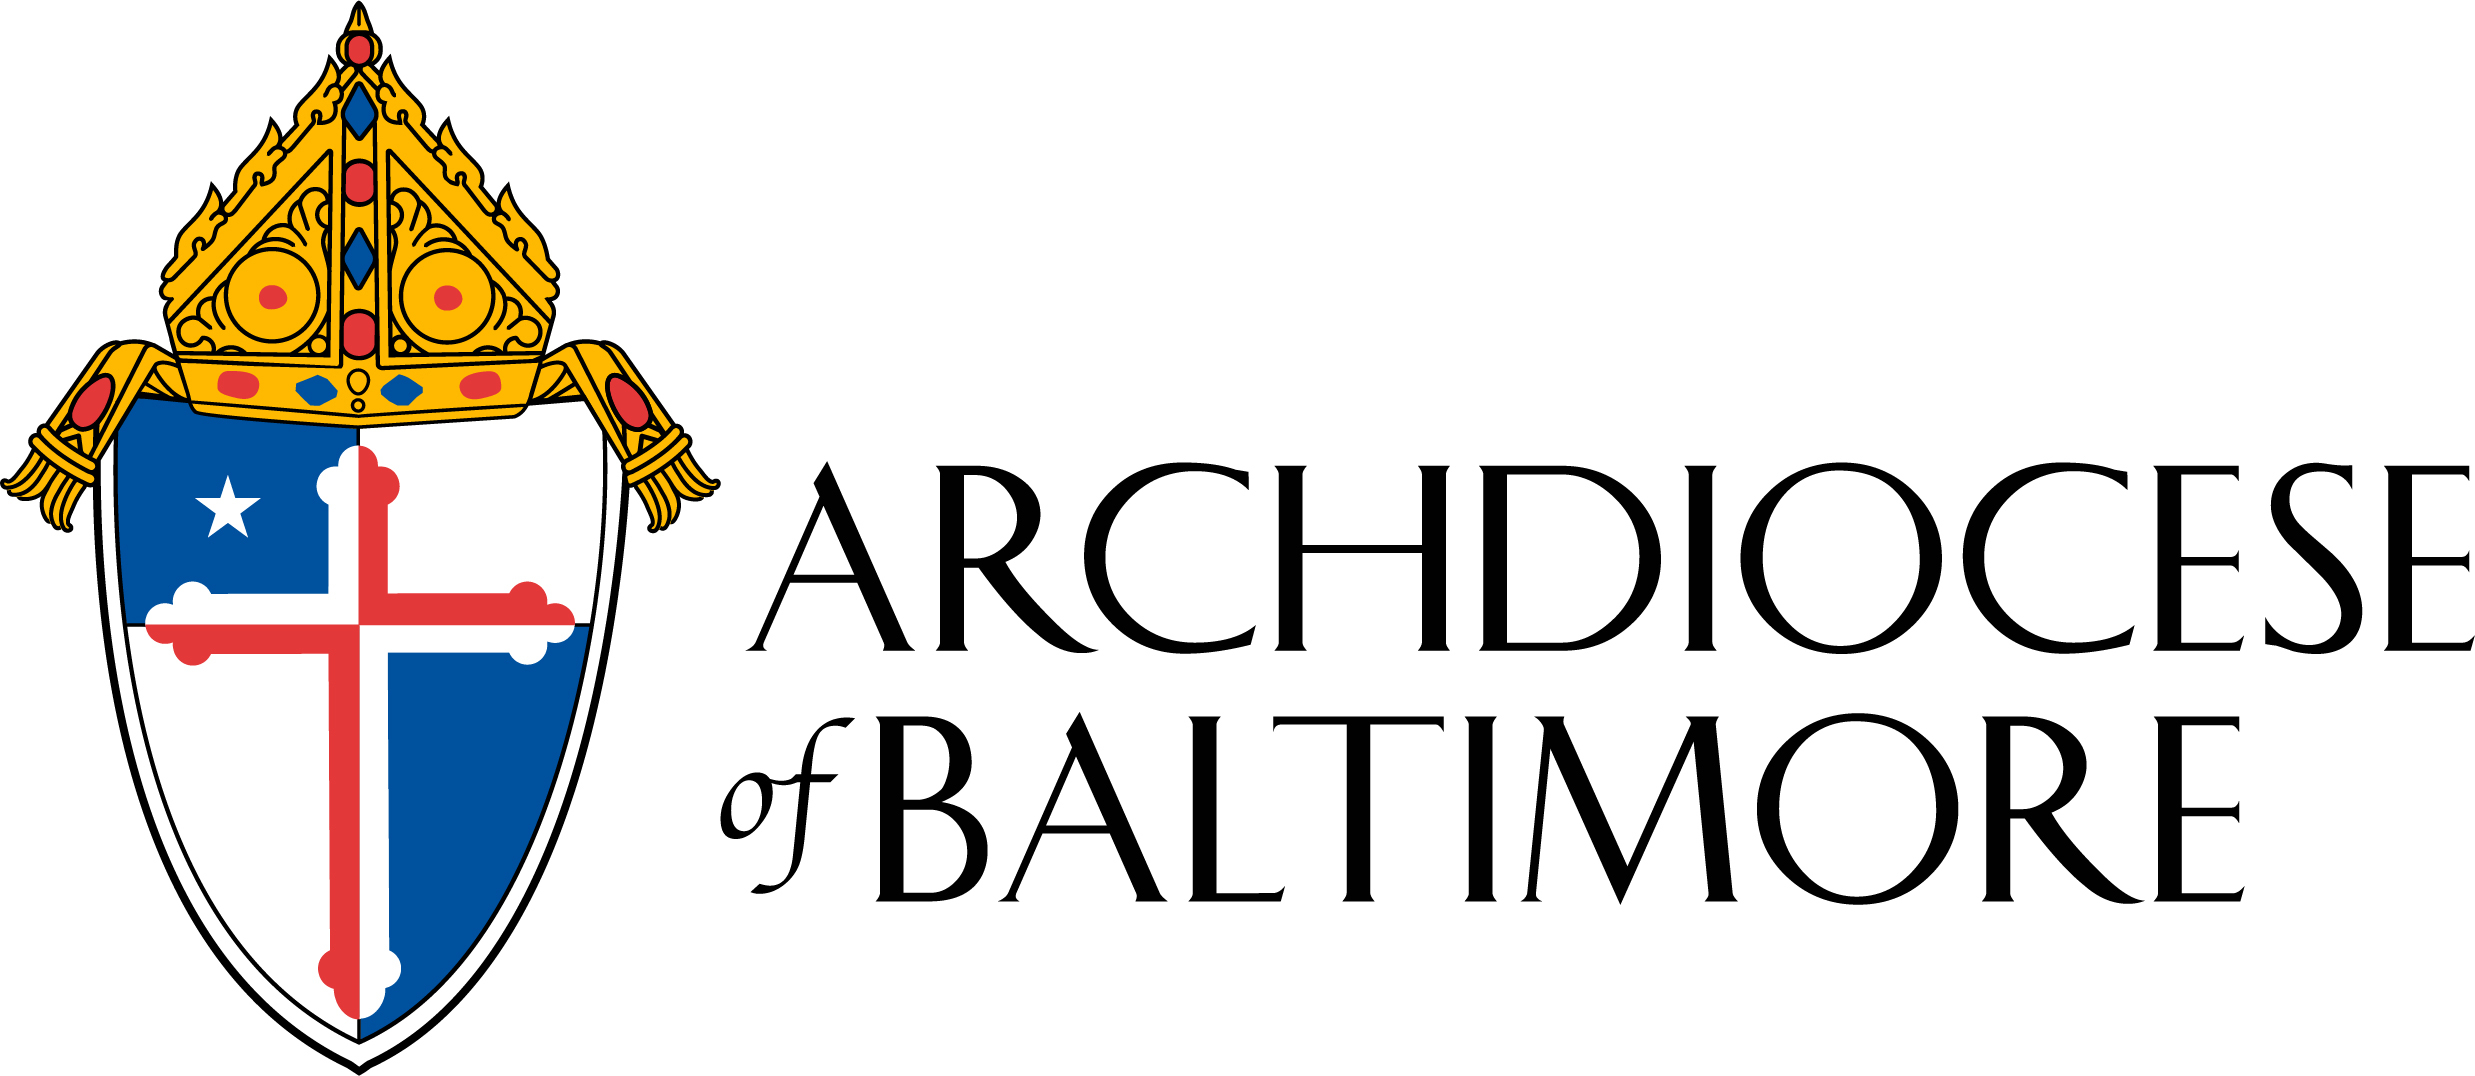 Archdiocese of Baltimore